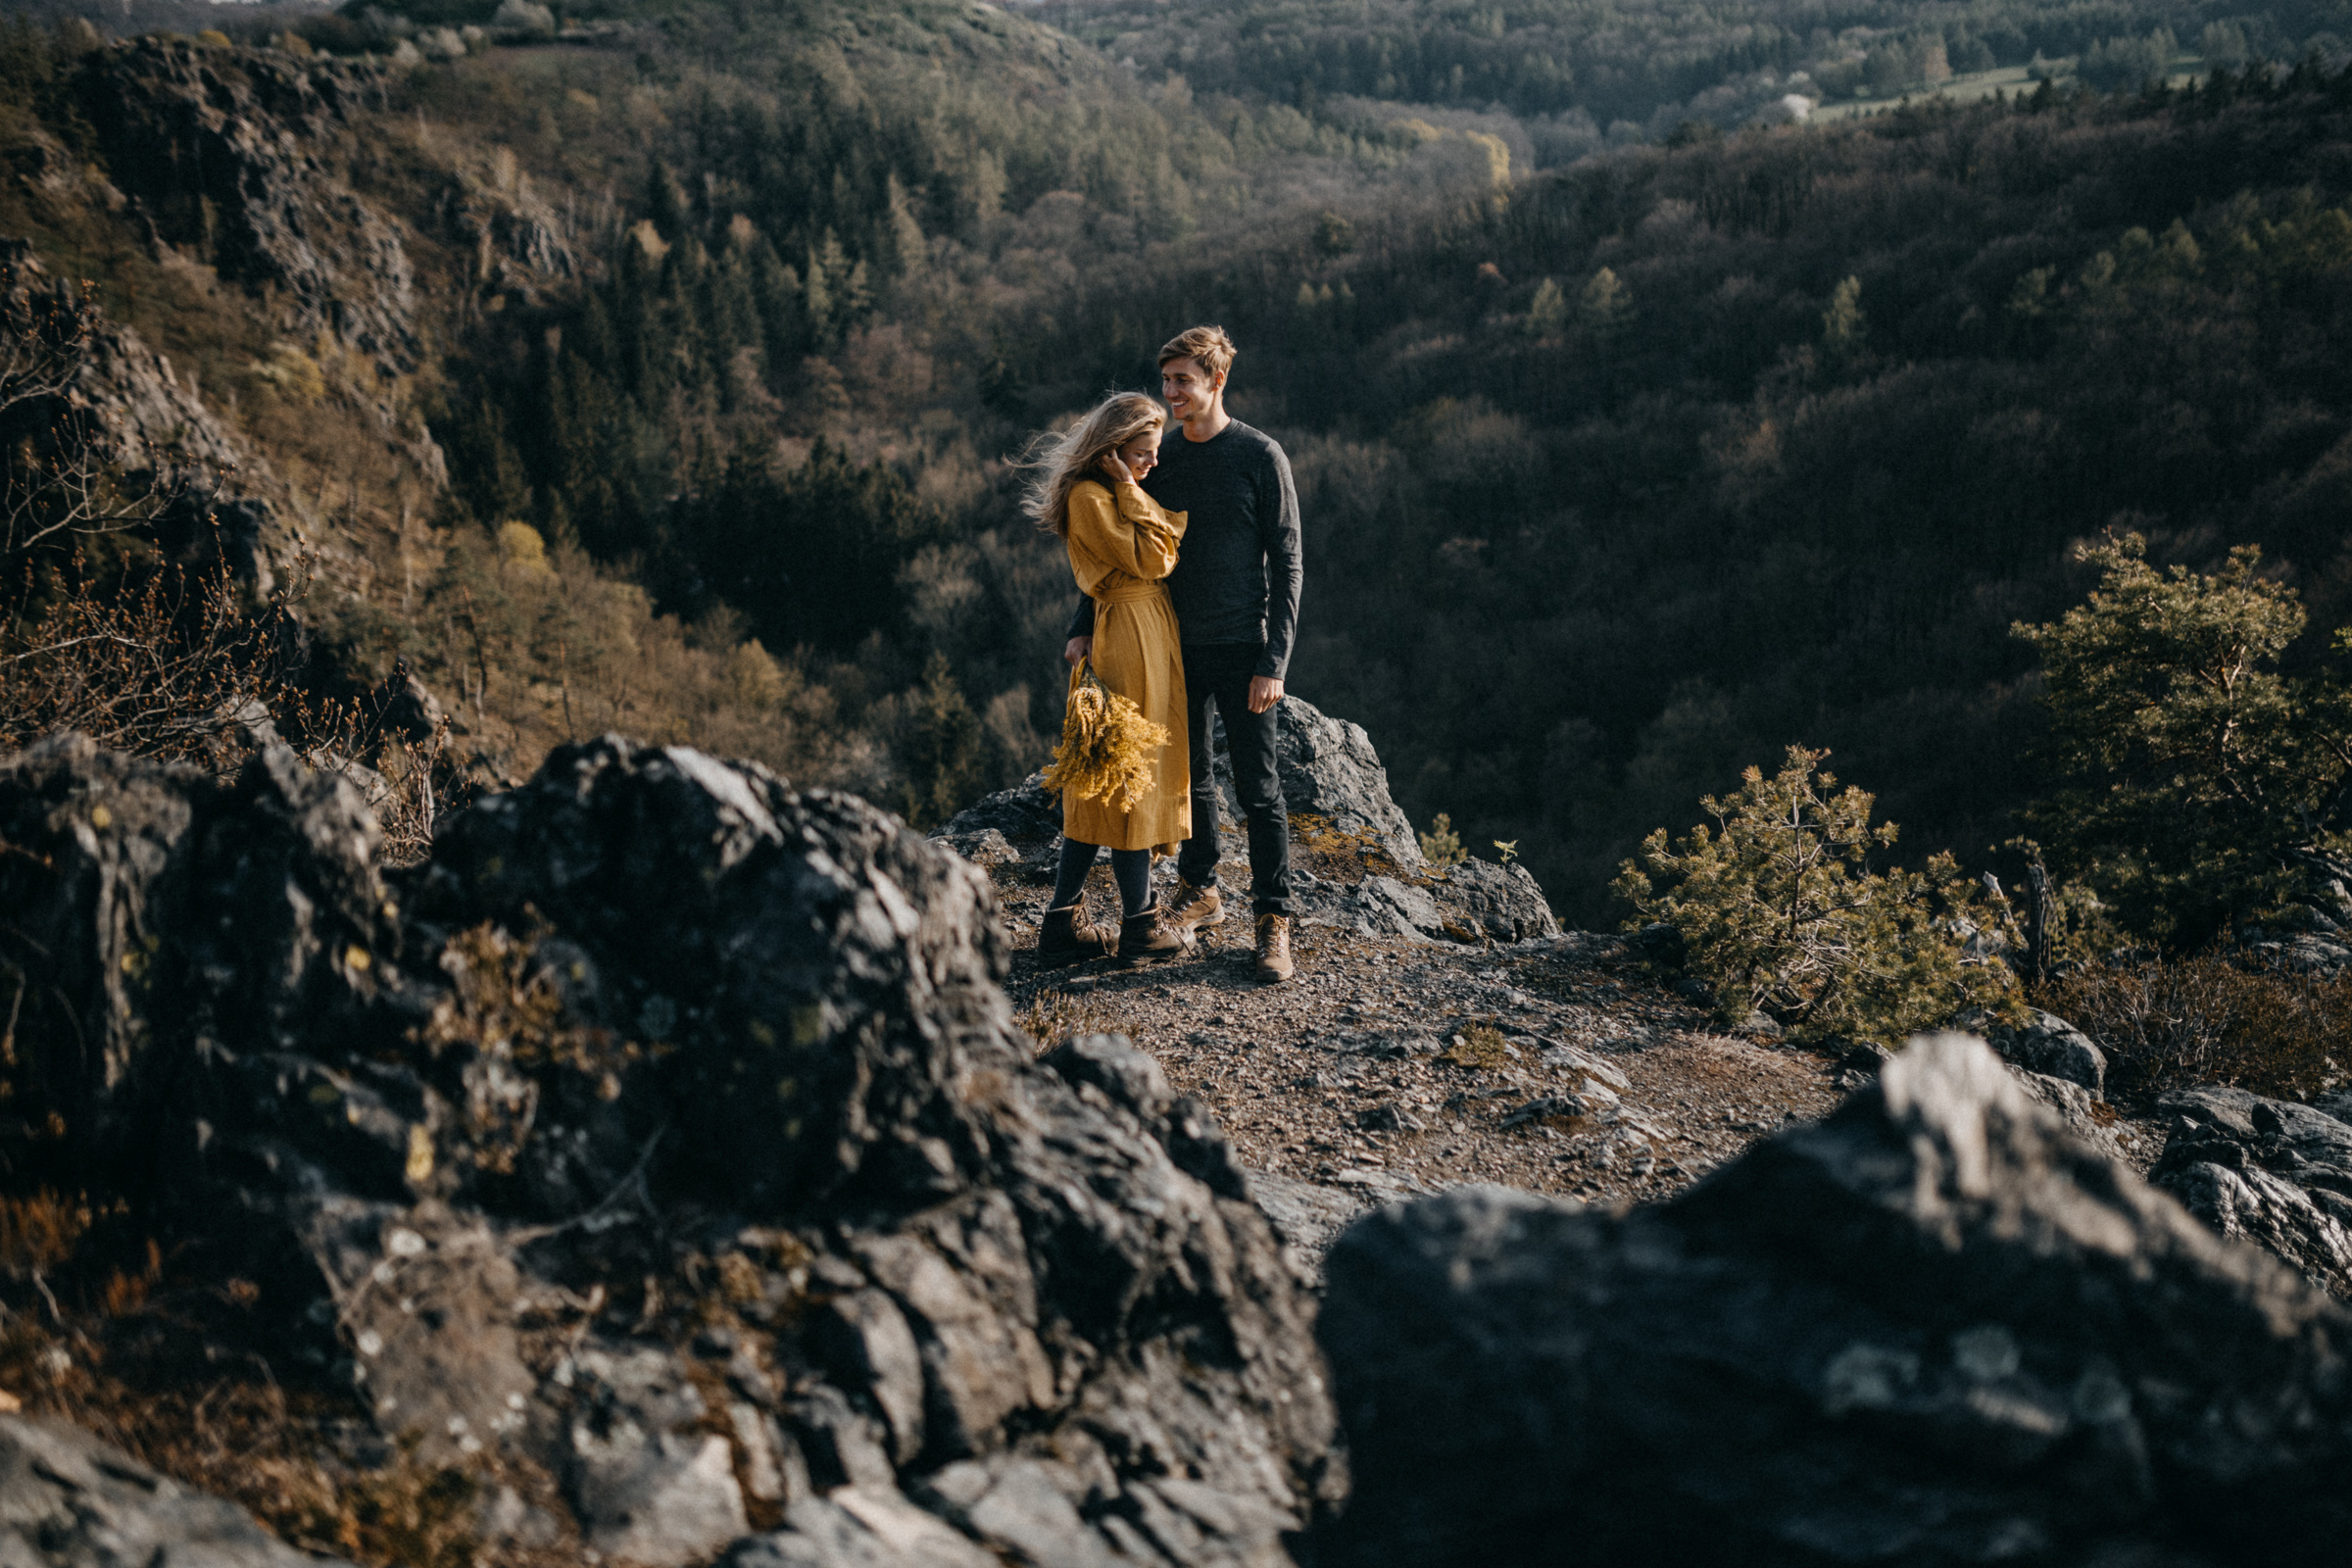 KEEP IT WILD - Our newest story